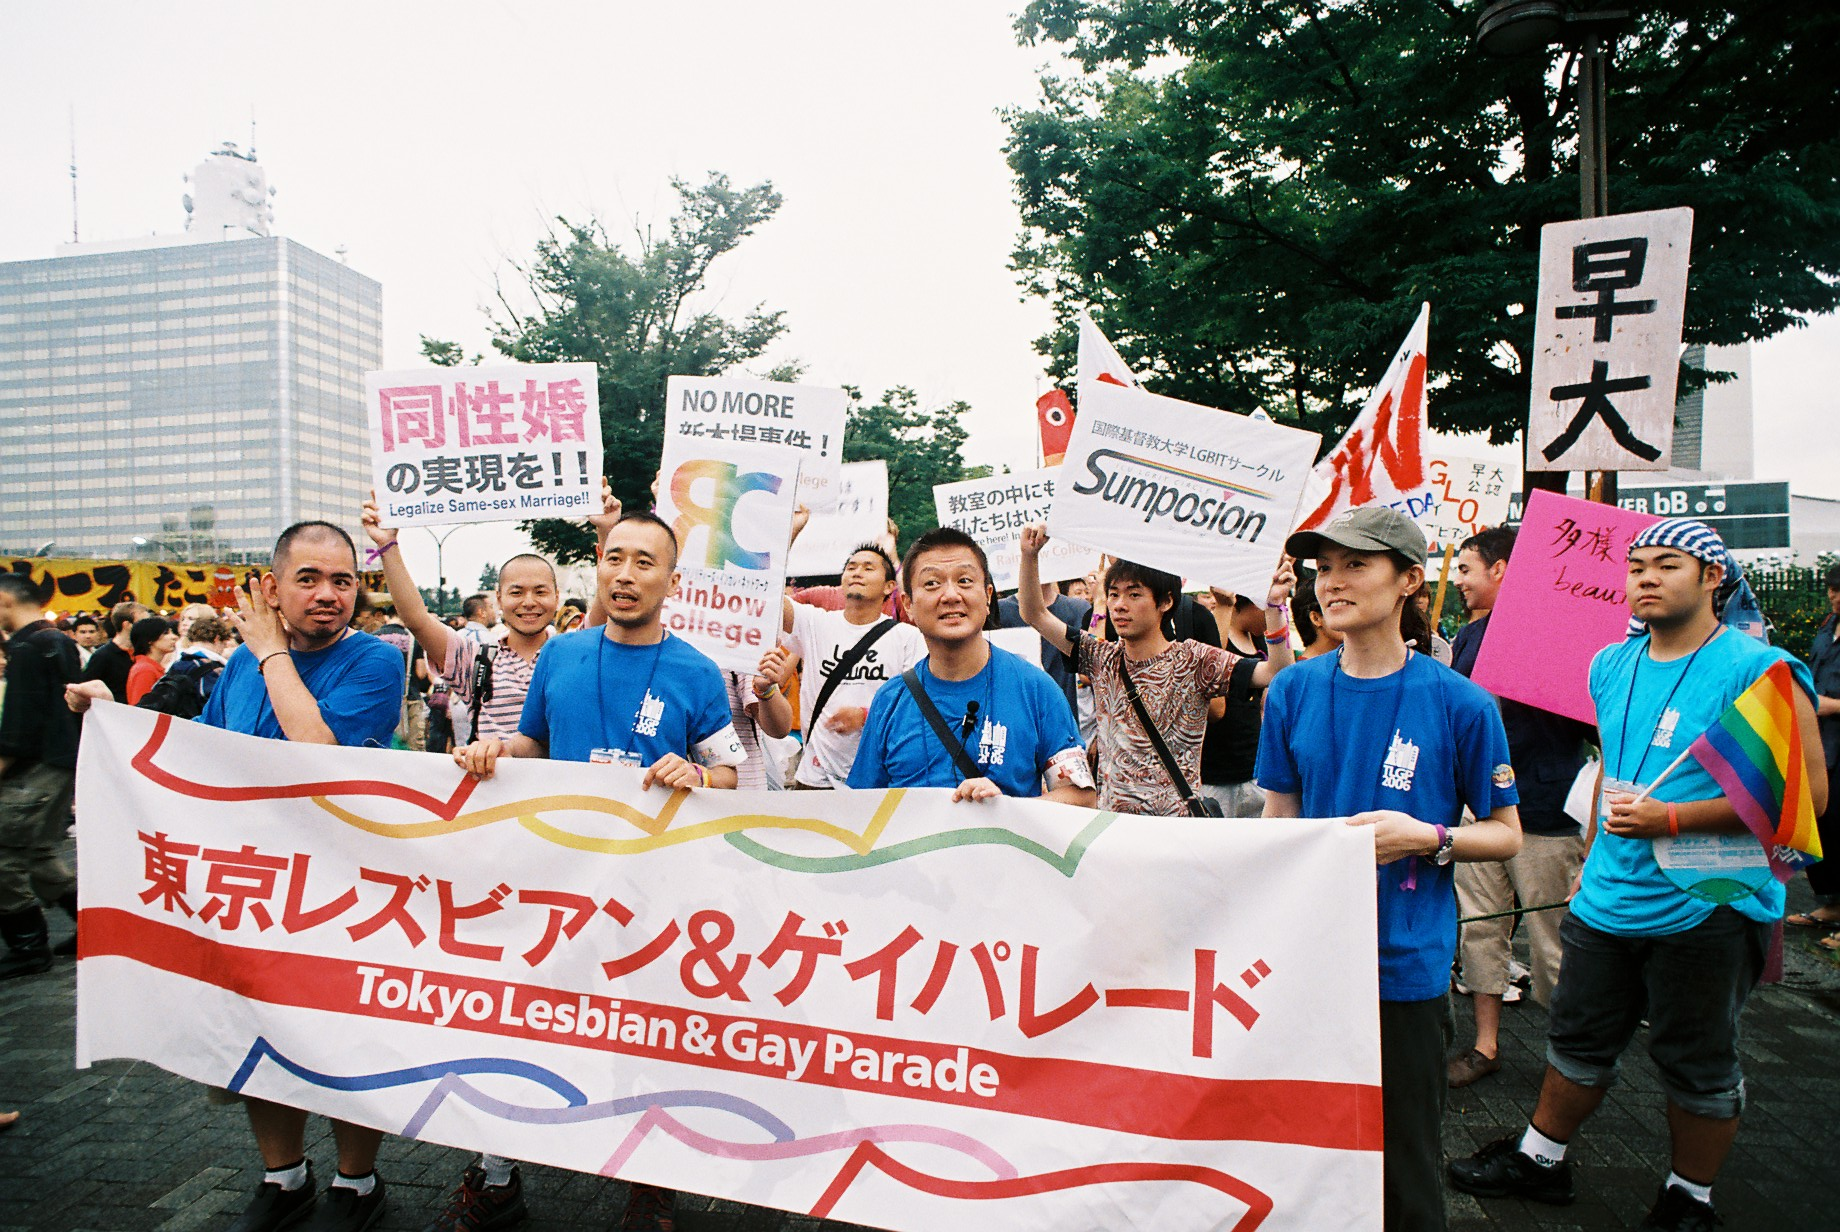 Members of the LGBTQ community and allies march at a gay pride parade in Tokyo, Japan in August 2006. (Wikimedia Commons)